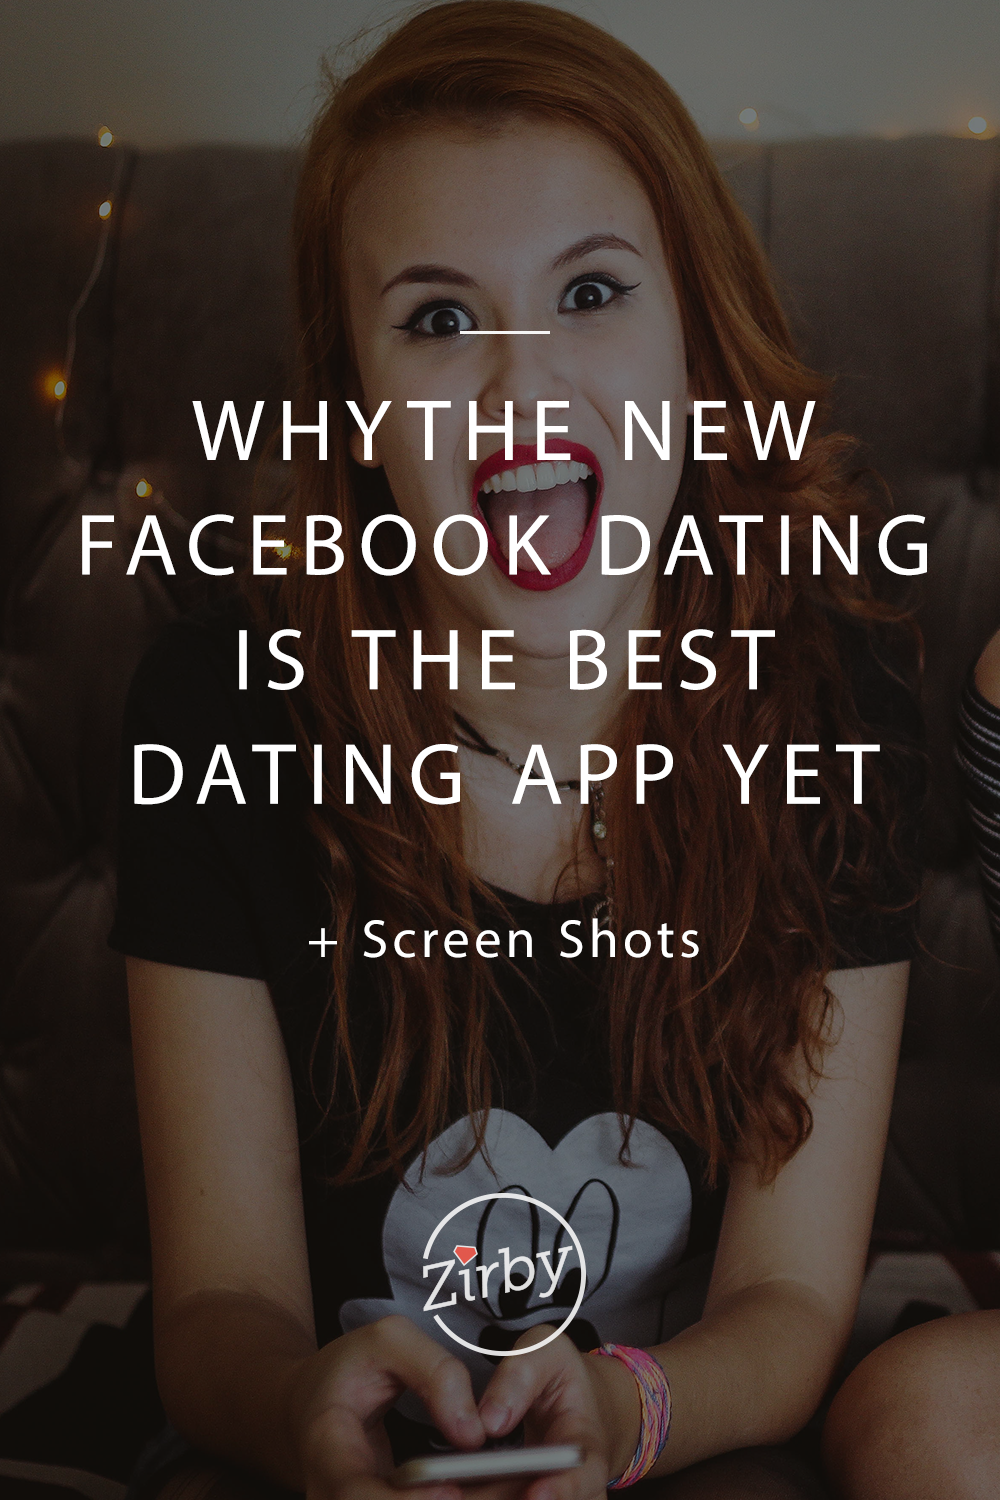 An Overview of the upcoming Facebook Dating app